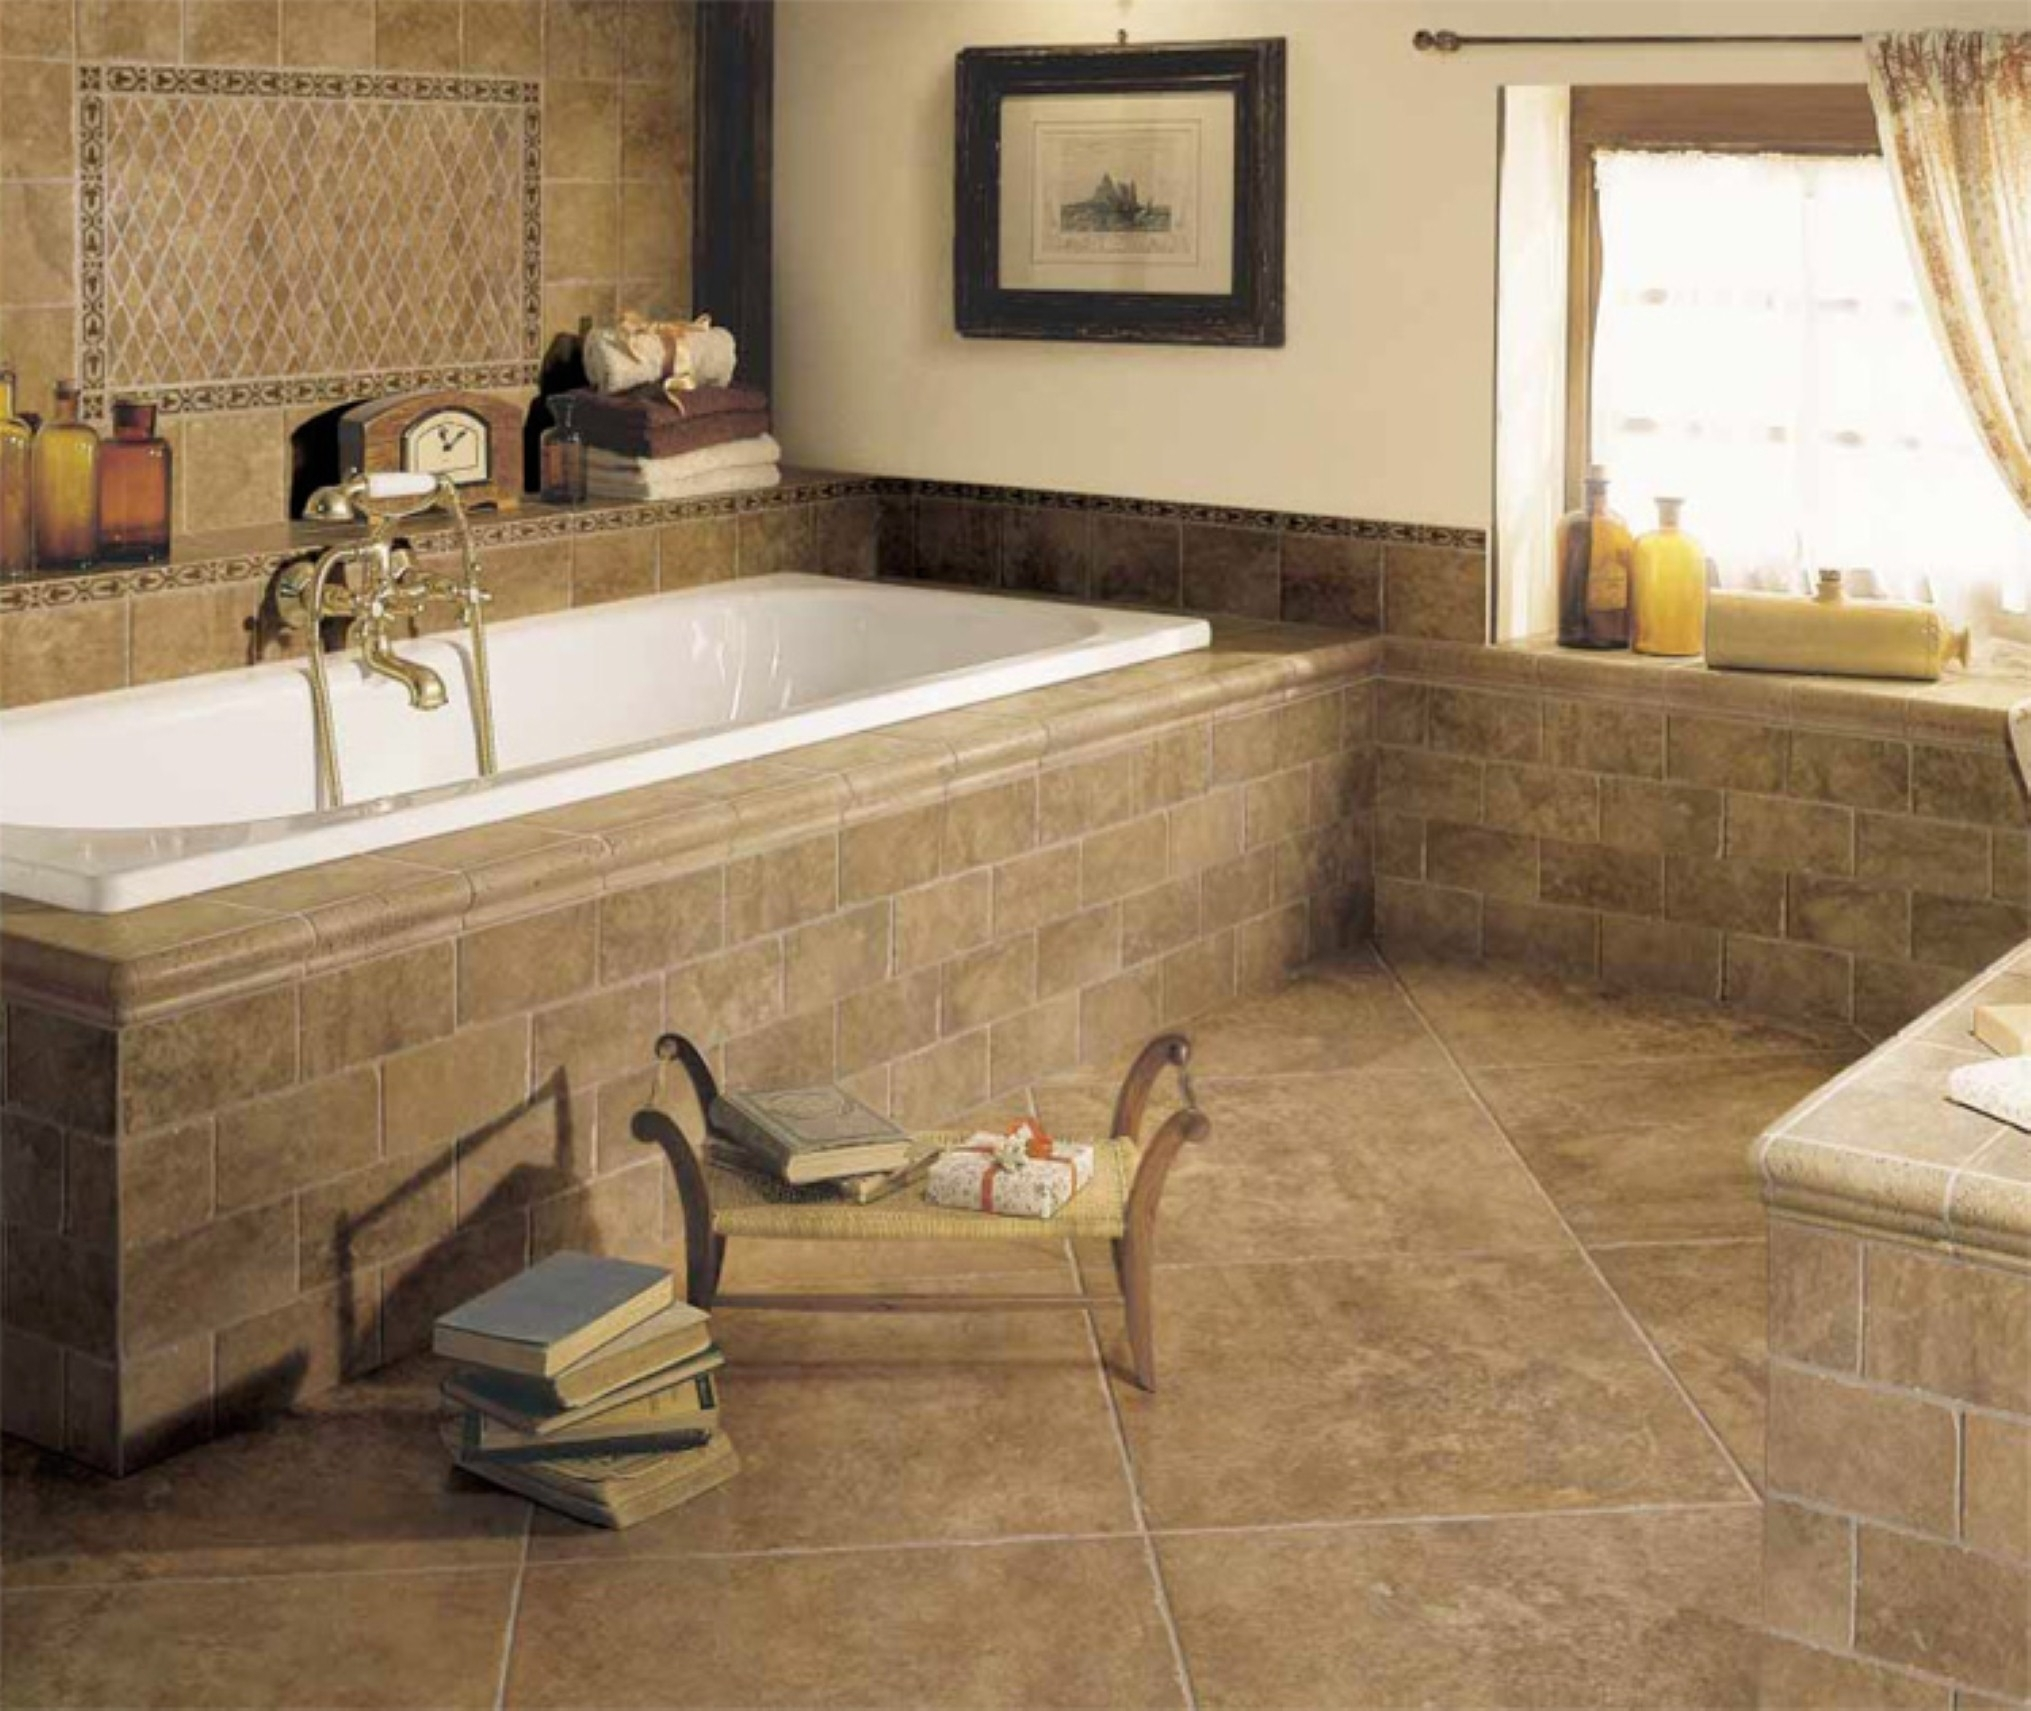 Stylish Bathroom Floor Tile Ideas With Fair Design Ideas Which Gives A Natural Sensation For Comfort Of Bathroom (View 15 of 23)